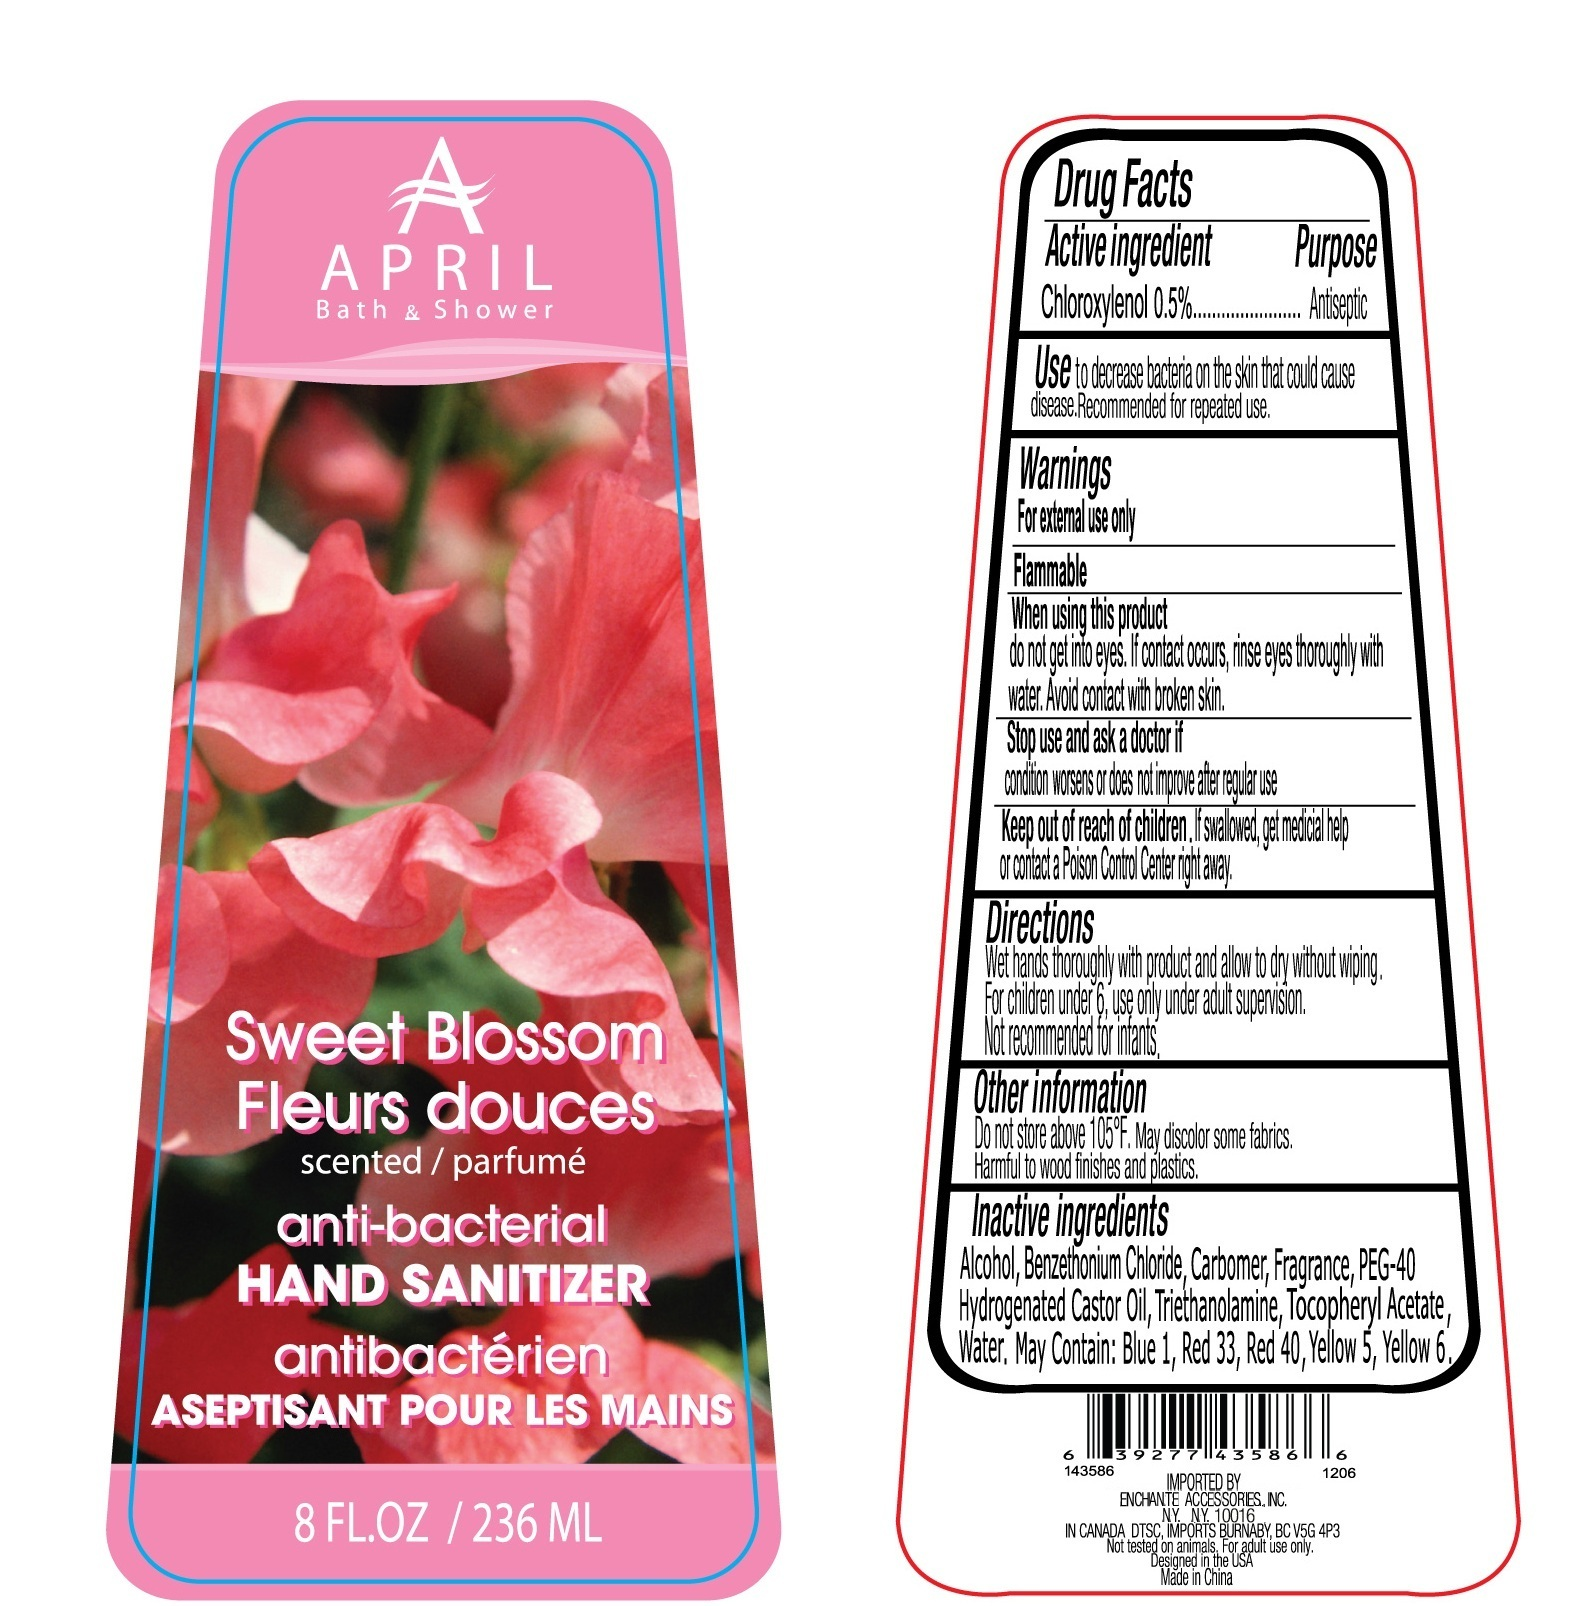 April Bath And Shower Sweet Blossom Scented Hand Sanitizer Anti-bacterial (Chloroxylenol) Liquid [Enchante Accessories Inc. ]